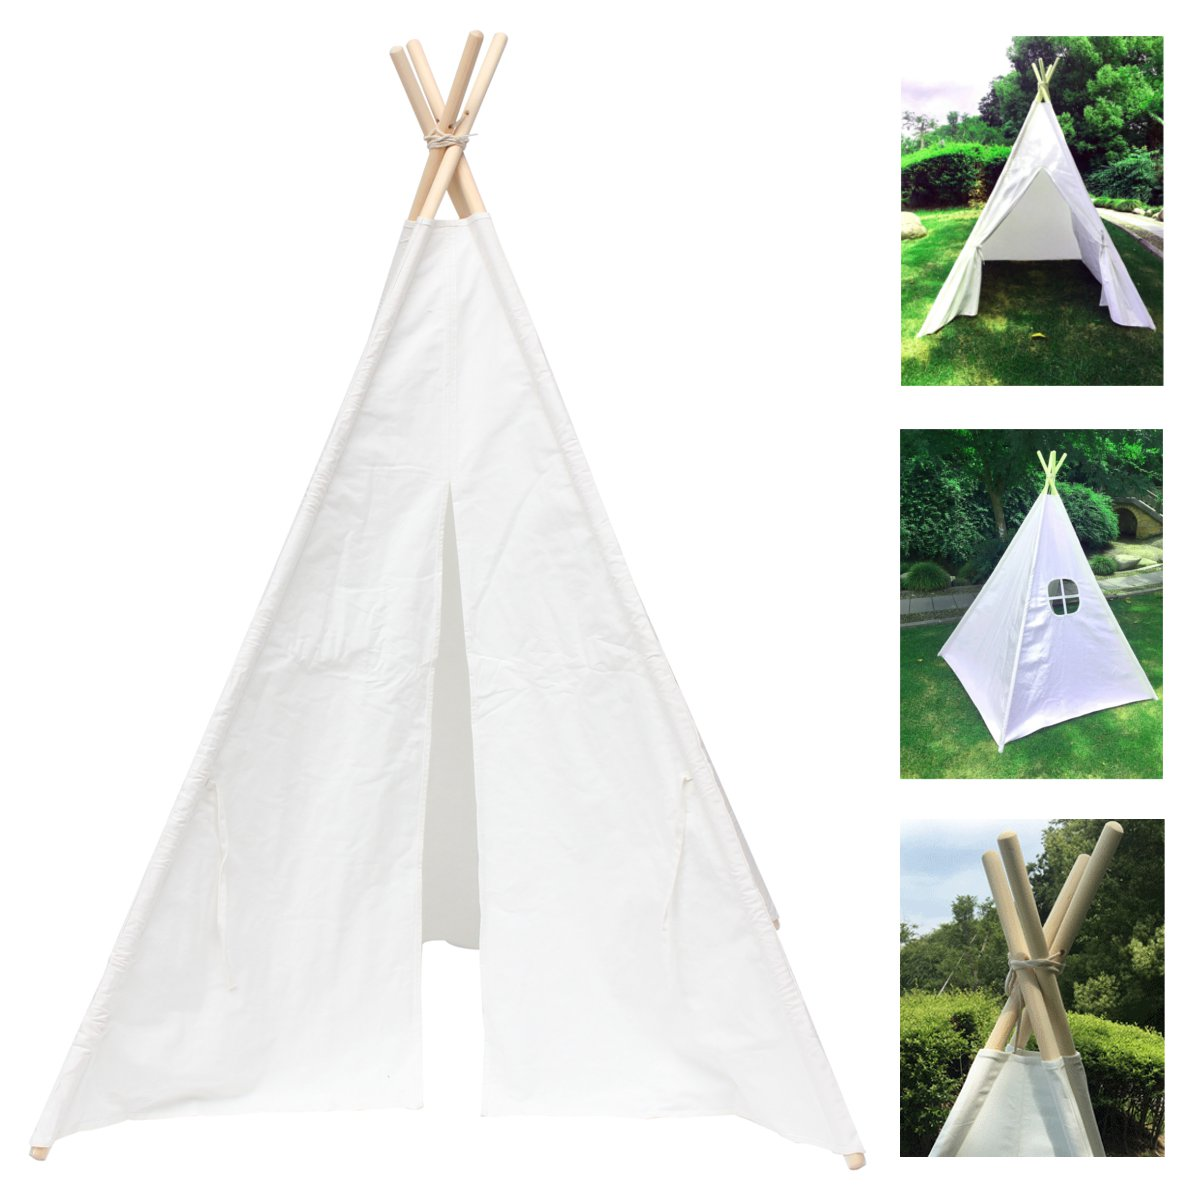 Large Unbleached White Canvas Kid Teepee Portable Folding Outdoor Castle Tent Indian Triangle Tent Children Home Game Toy TentLarge Unbleached White Canvas Kid Teepee Portable Folding Outdoor Castle Tent Indian Triangle Tent Children Home Game Toy Tent